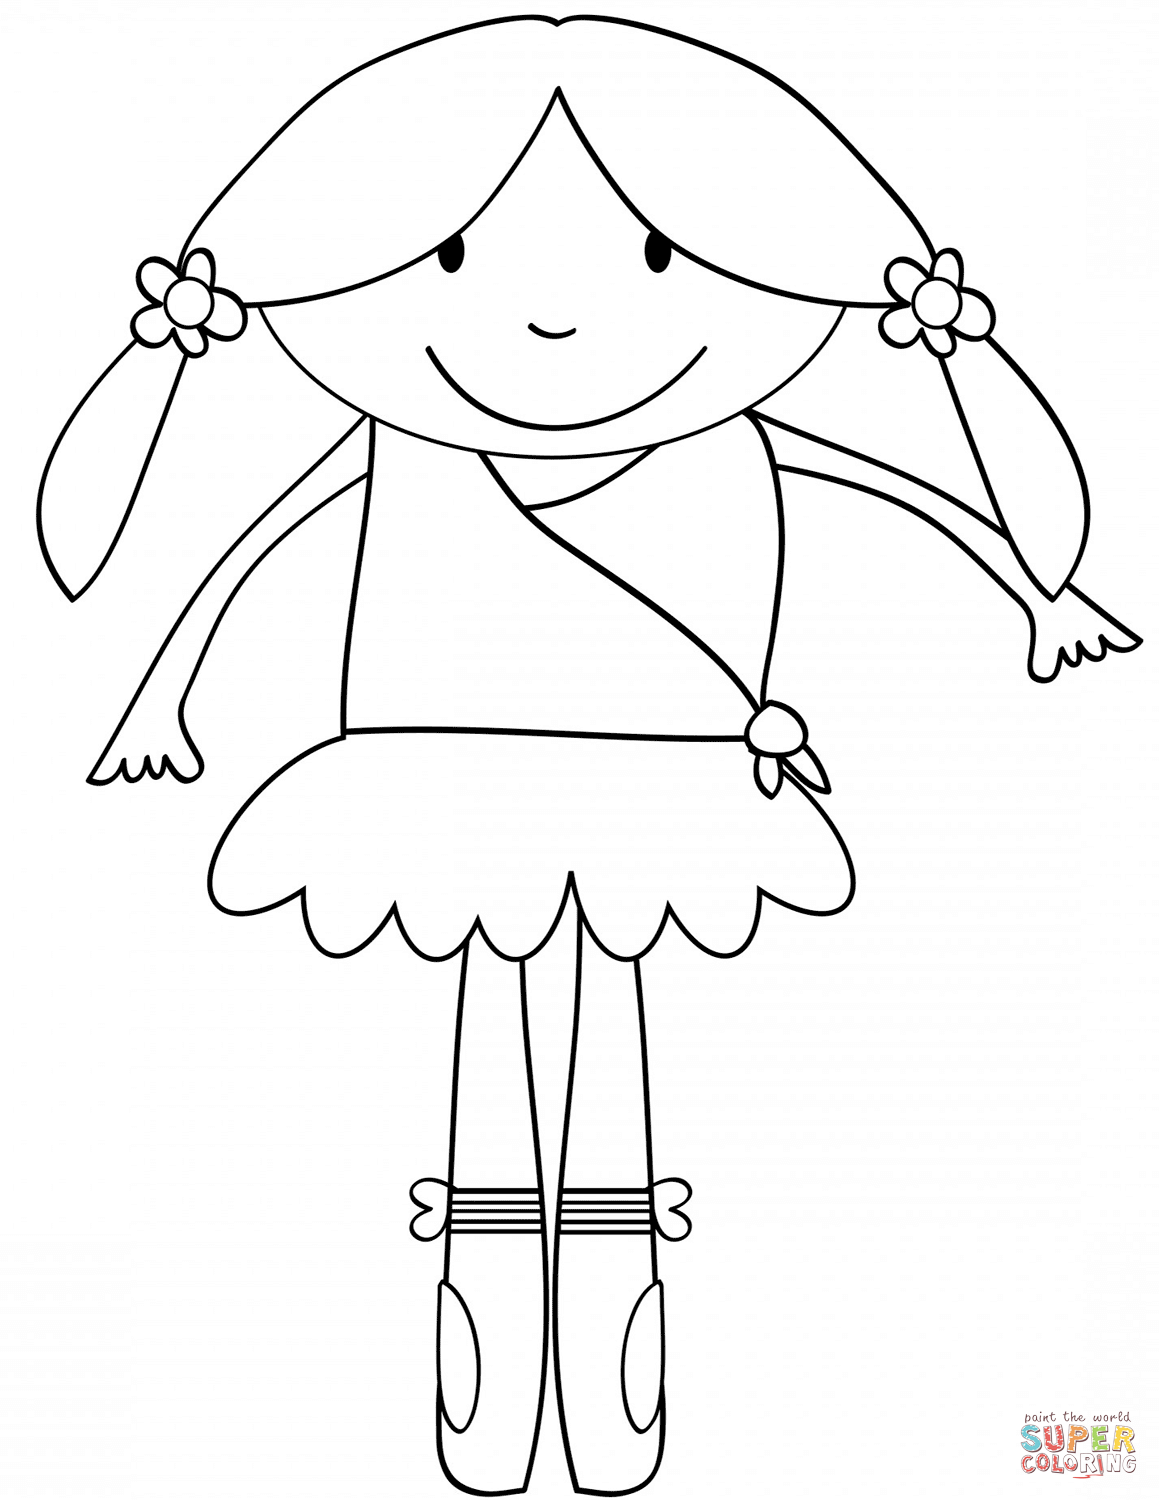 ballerina coloring book pages ballerina coloring pages for childrens printable for free pages coloring ballerina book